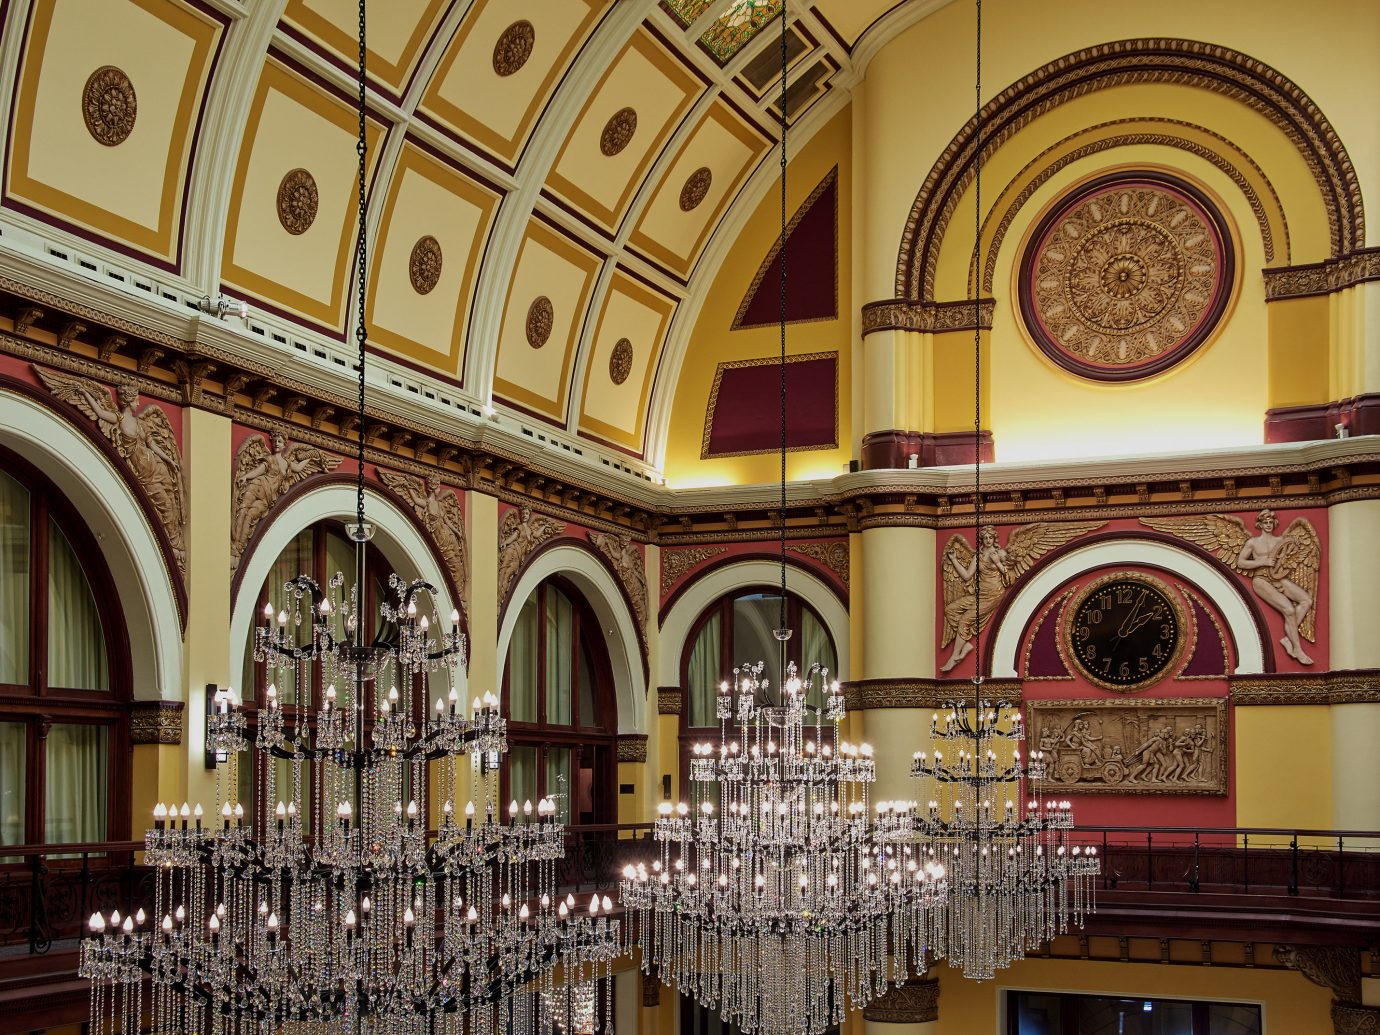 Boutique Hotels Hotels Trip Ideas indoor building Architecture place of worship palace Church cathedral chapel facade interior design synagogue basilica